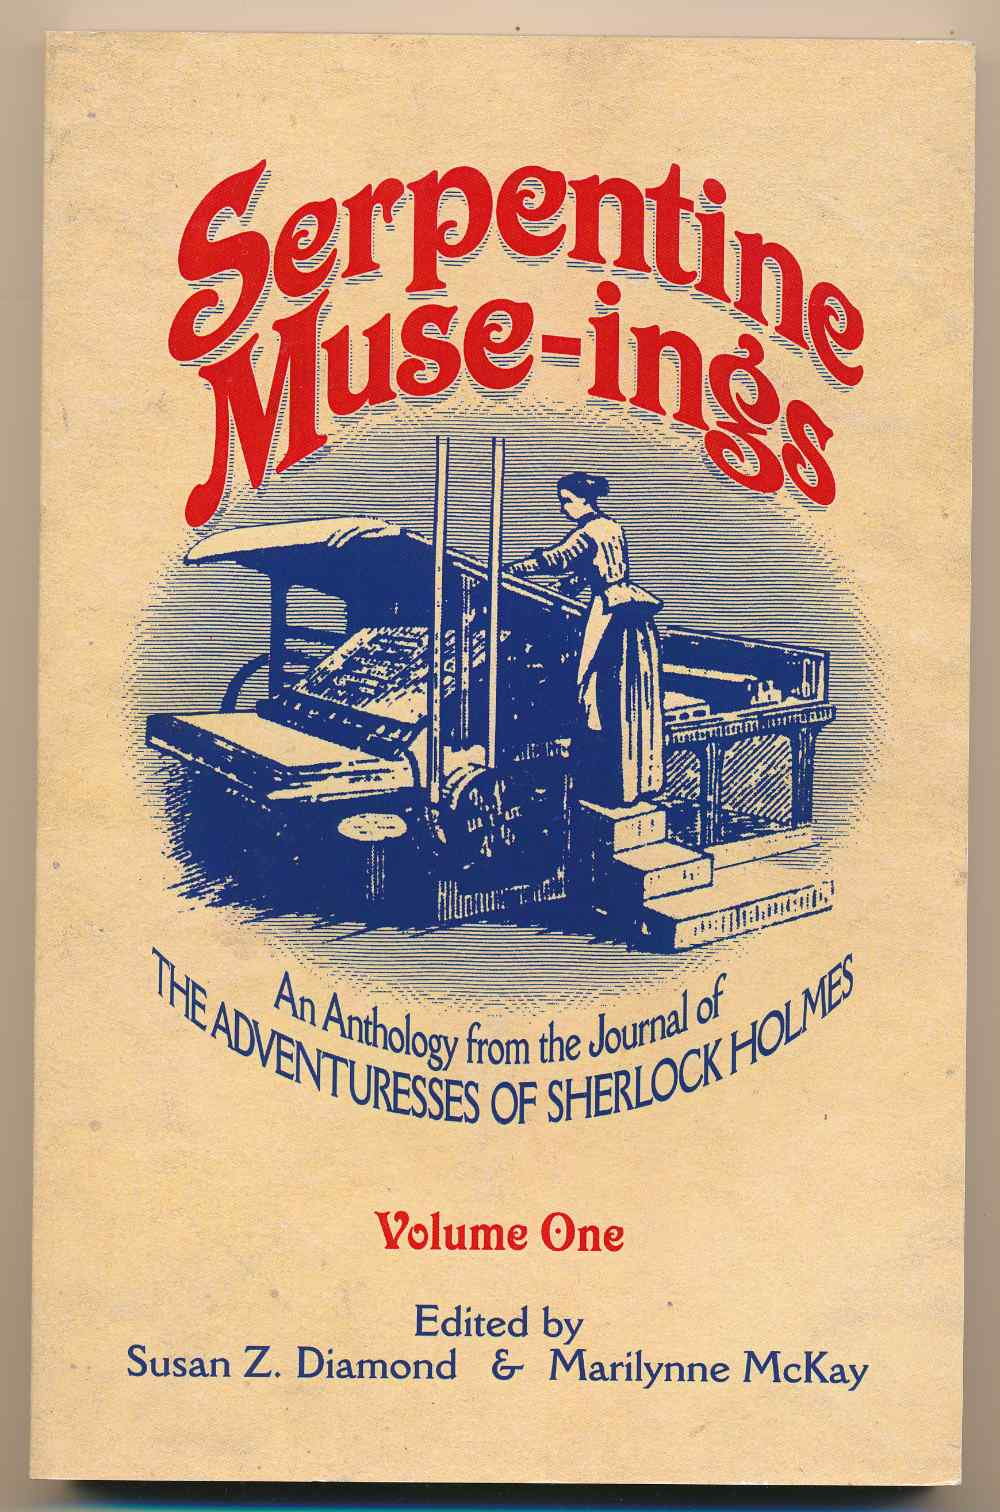 Serpentine muse-ings : an anthology from the Journal of the Adventuresses of Sherlock Holmes. Volume one